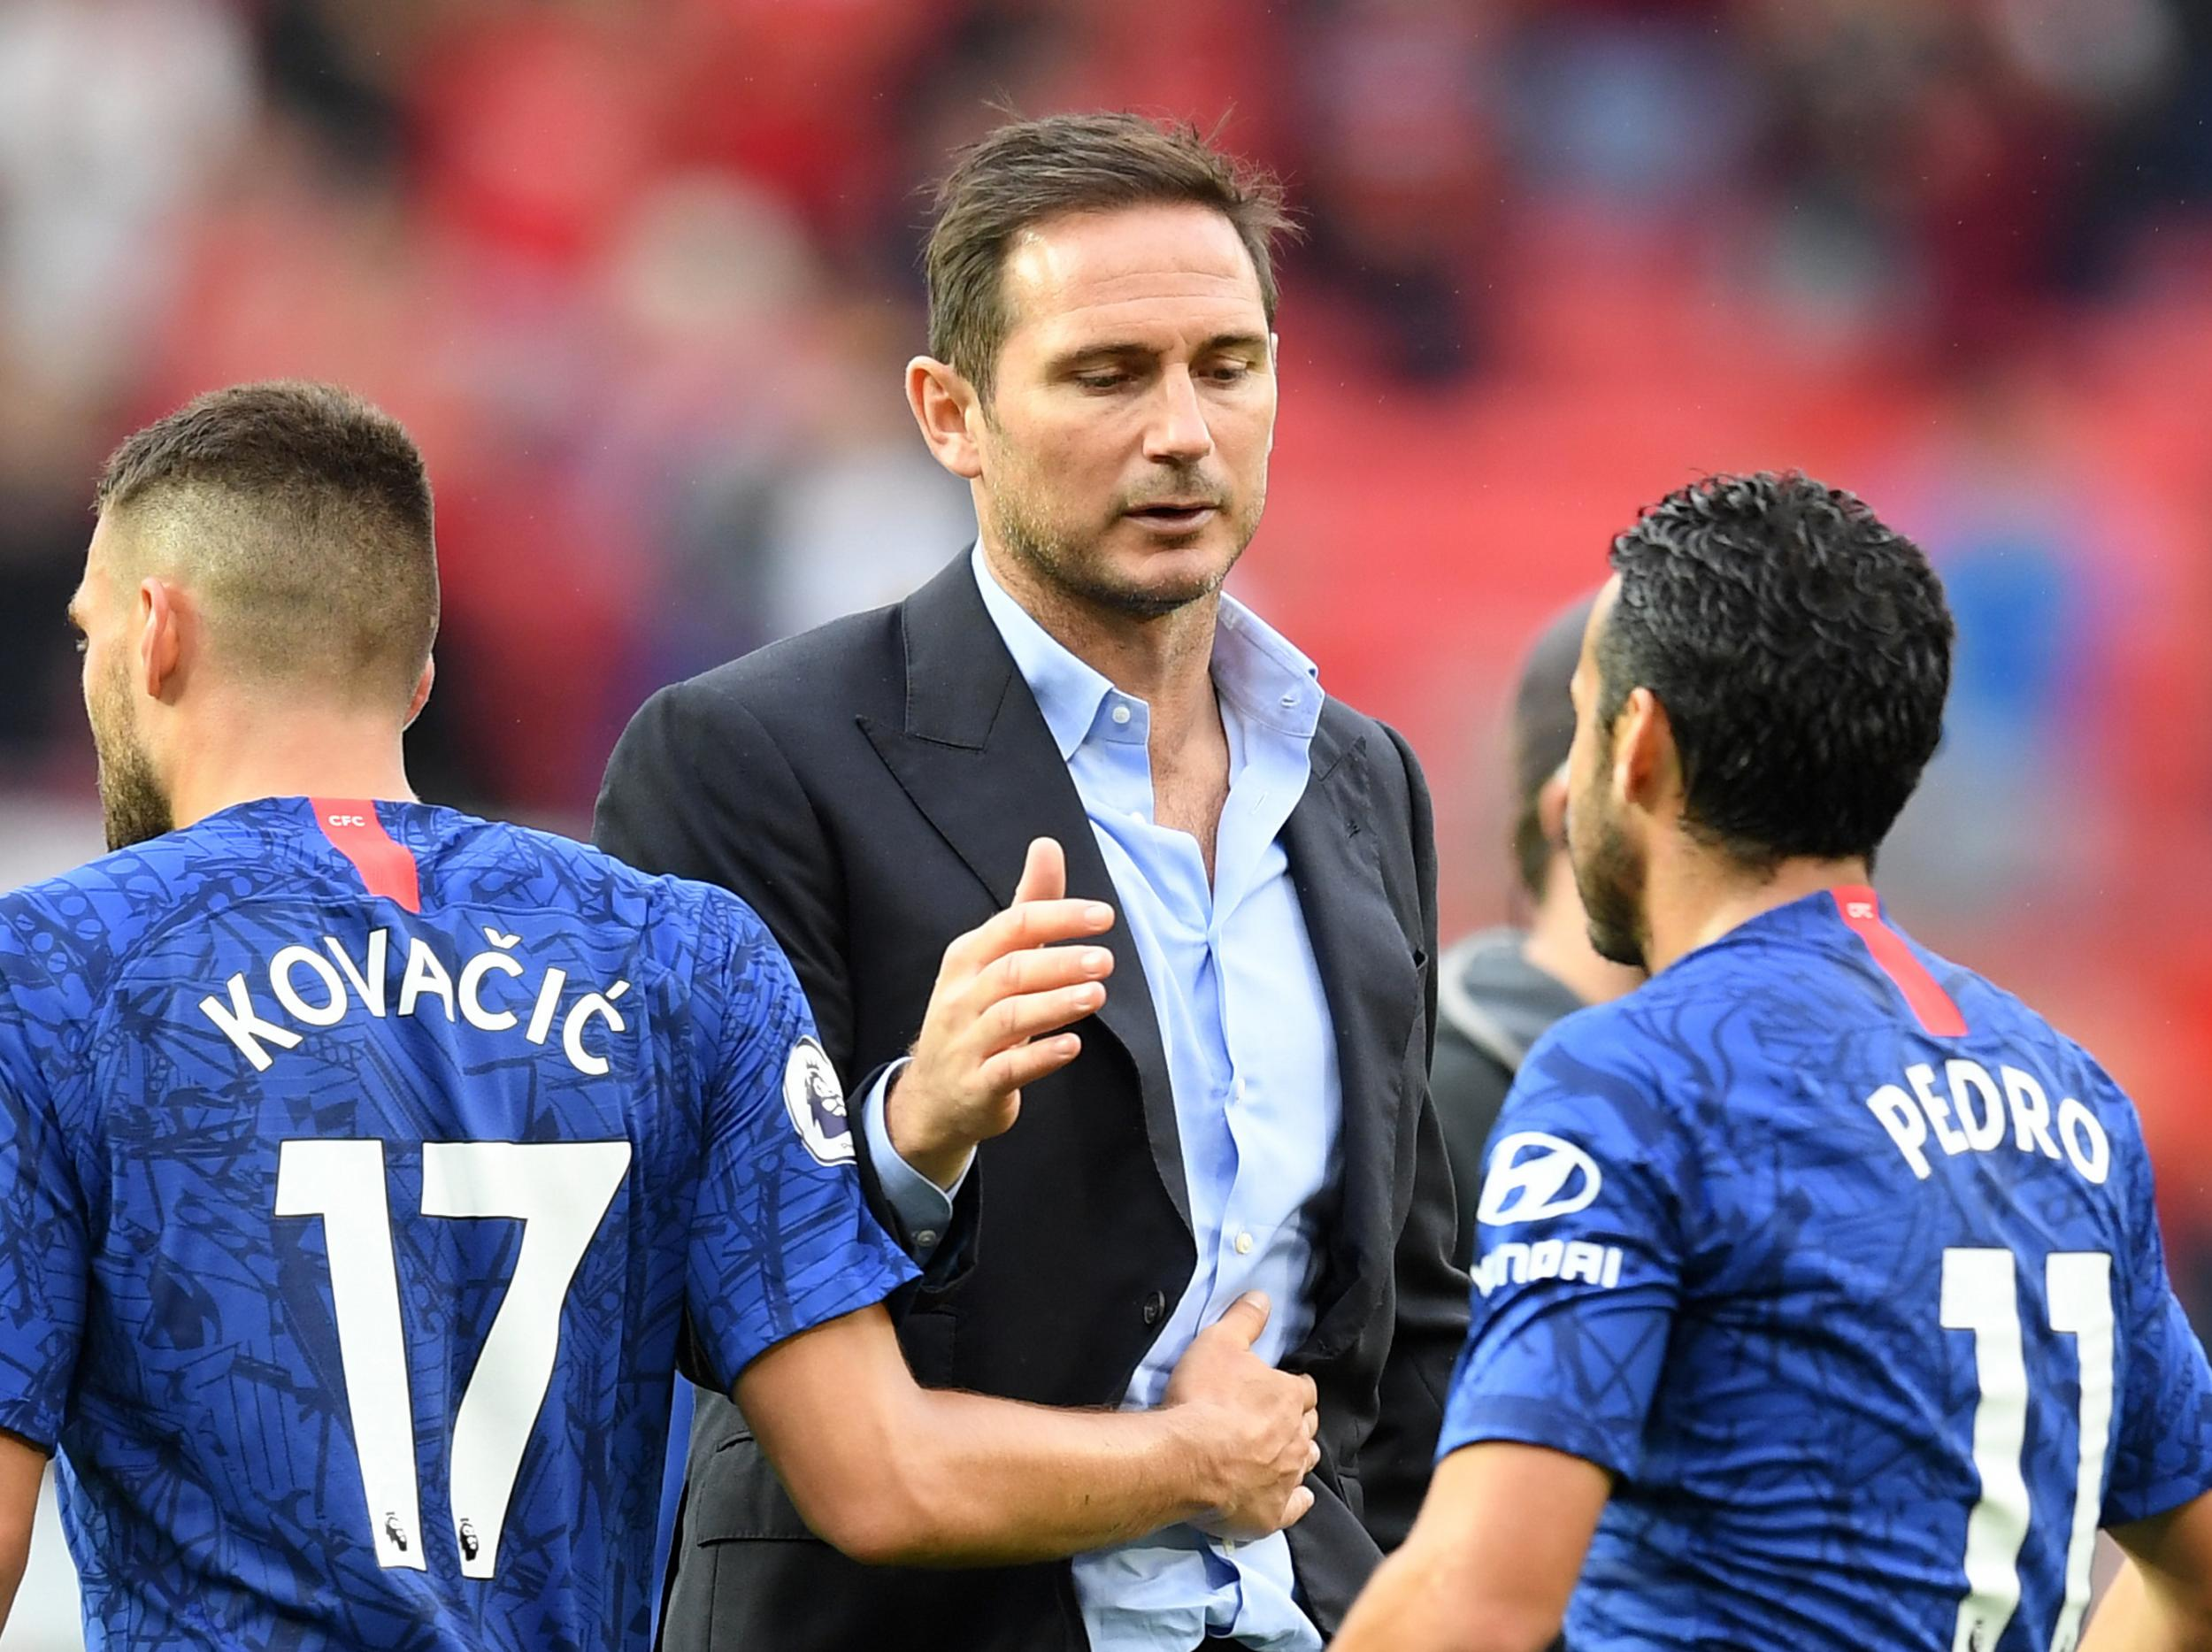 Chelsea's loss to Manchester United really was a nightmare start – but Frank Lampard needs time